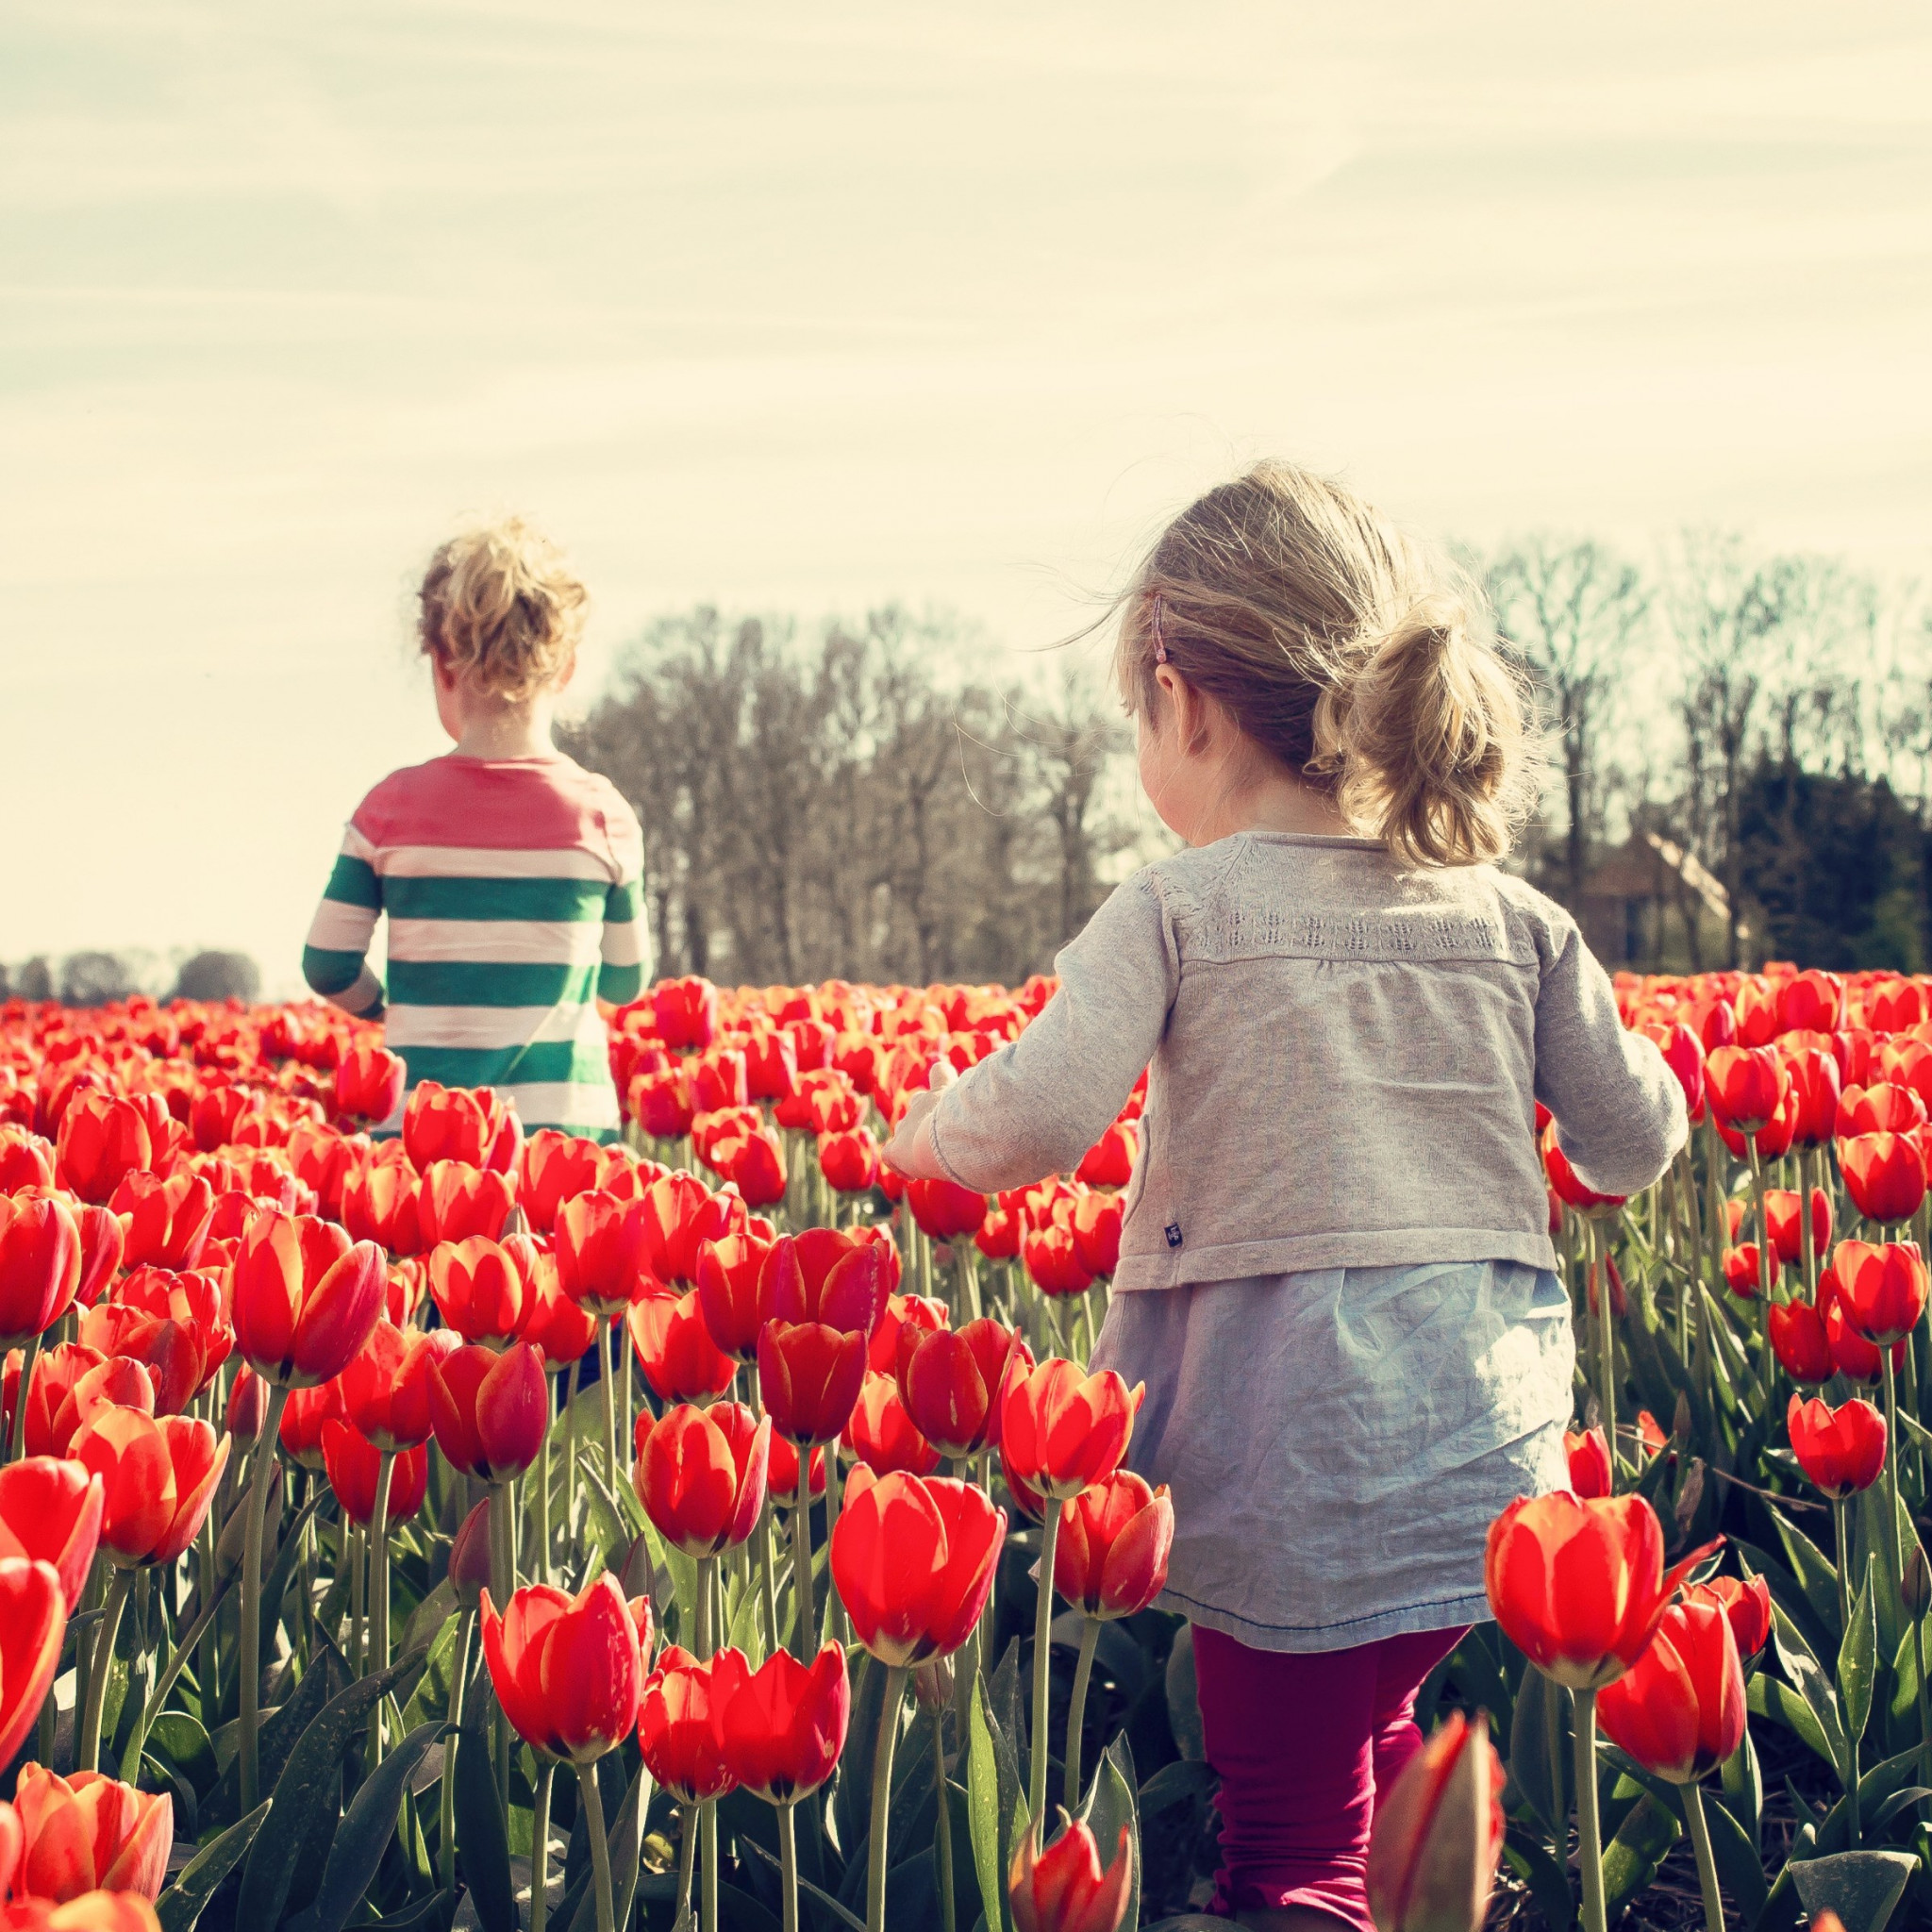 Children in the land with tulips | 2048x2048 wallpaper